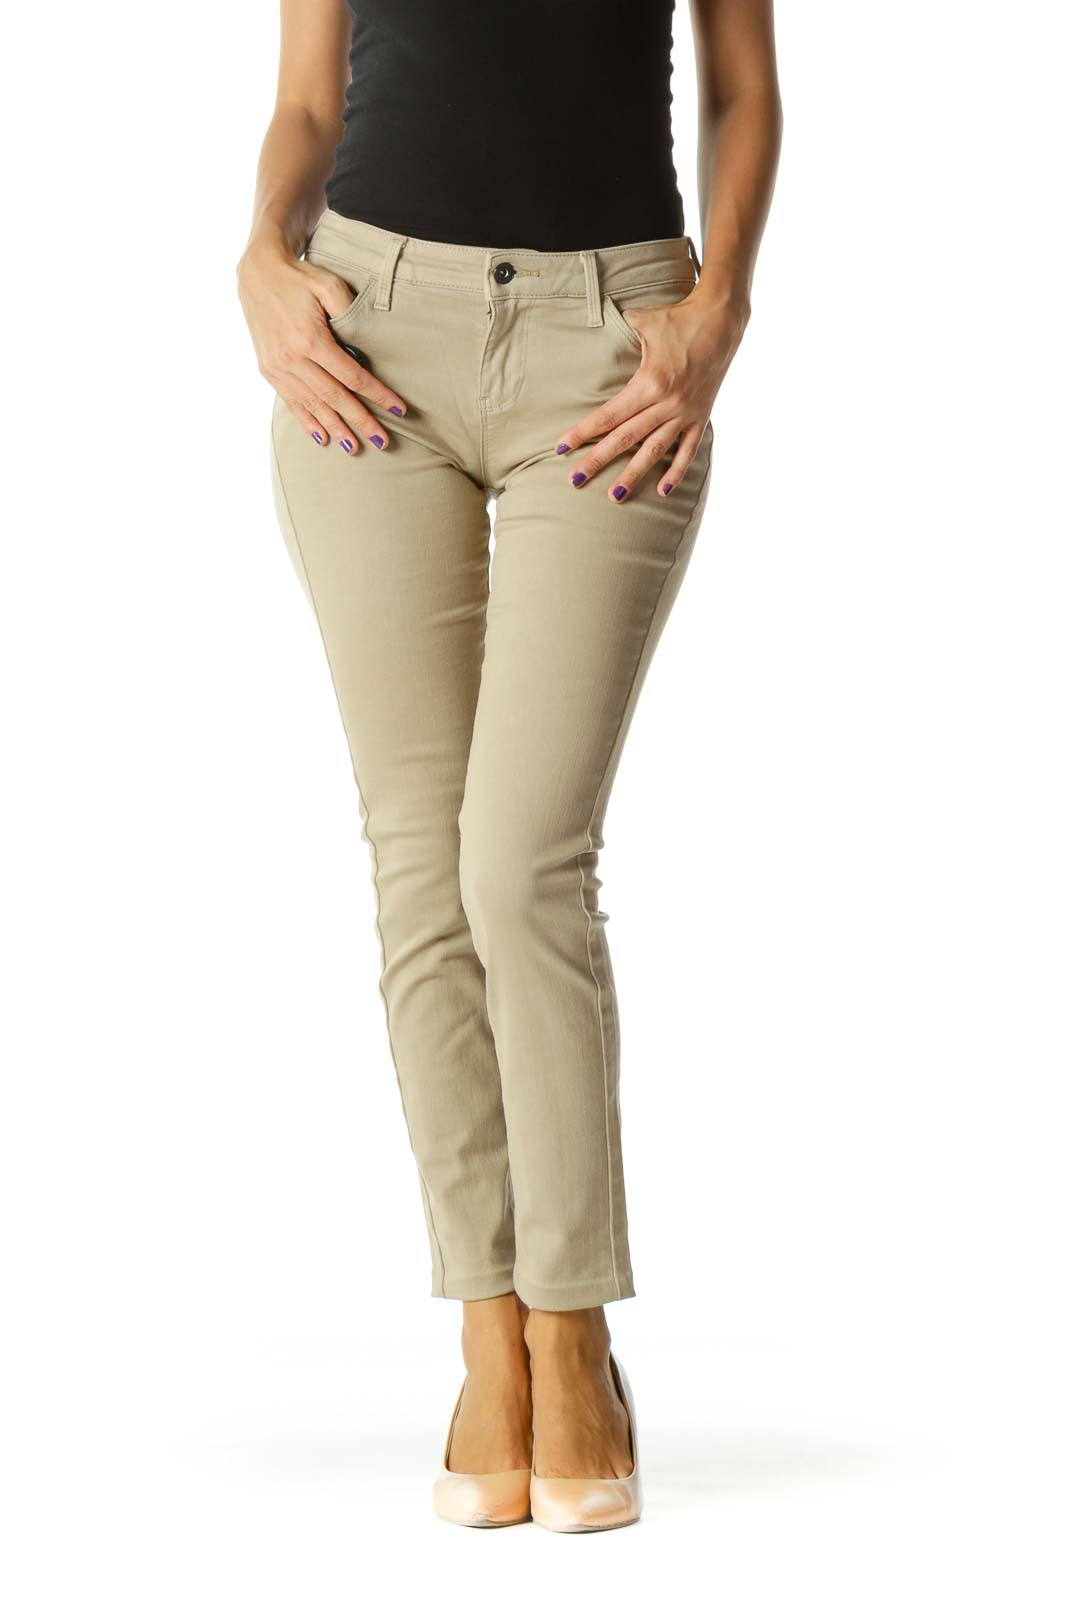 Beige Skinny Stretch Pants (Altered Hem at Ankles)